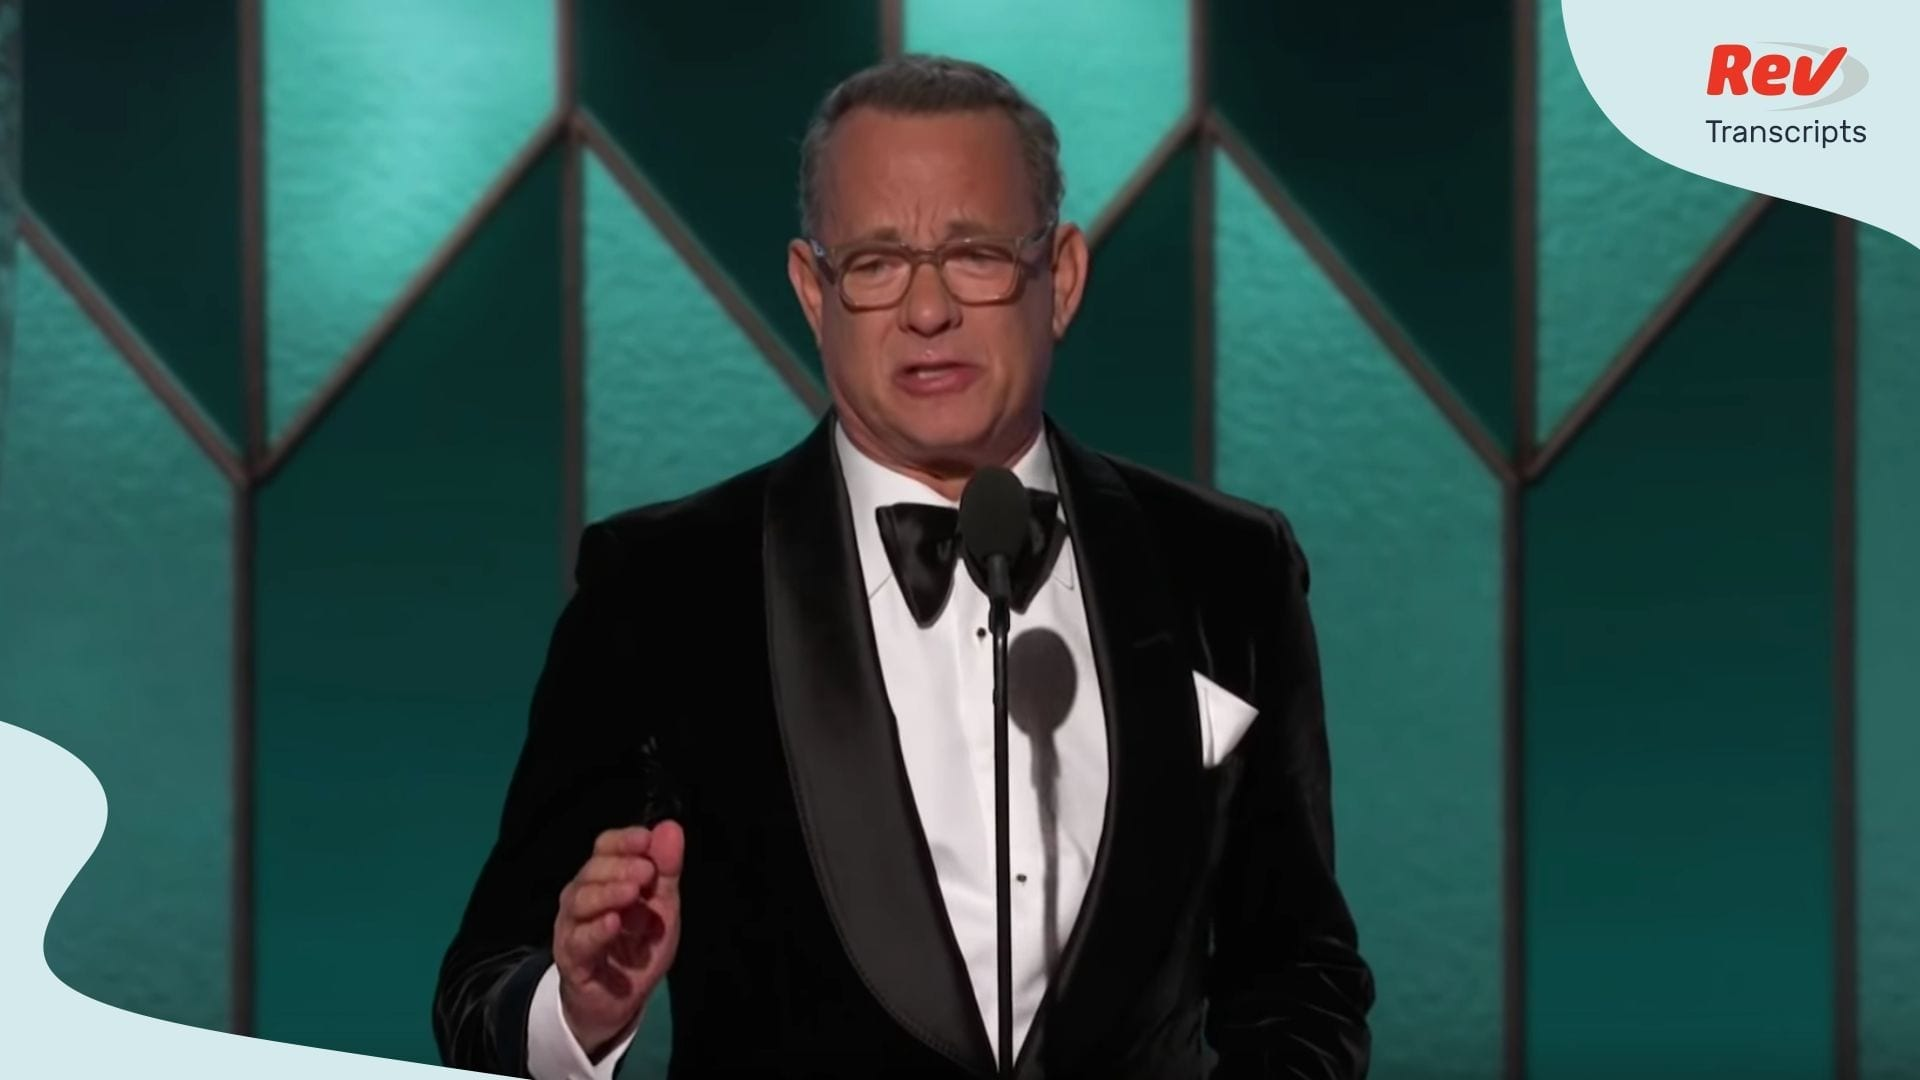 Tom Hanks Golden Globes Acceptance Speech Transcript